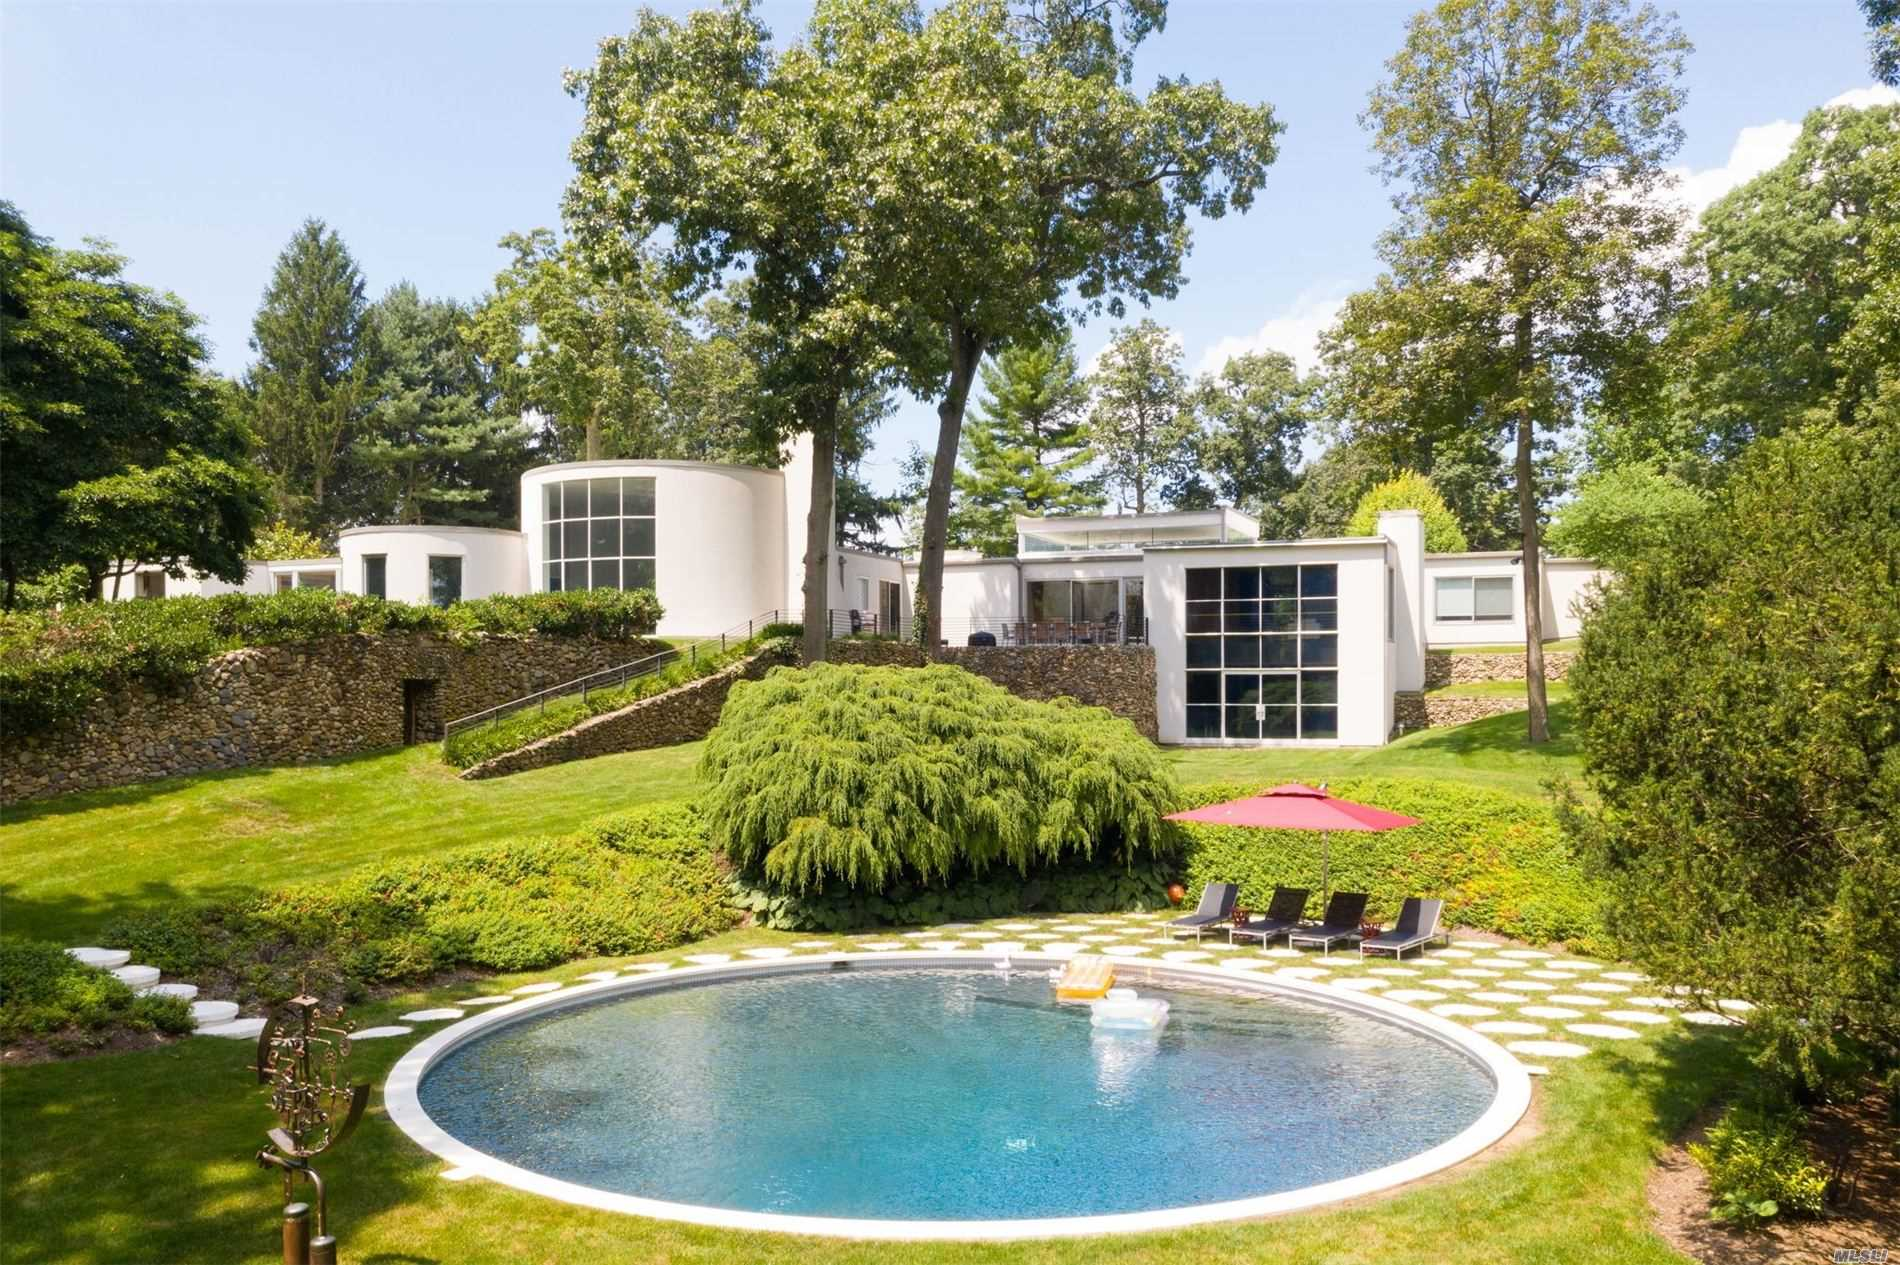 Rarely do you have the opportunity to own a masterpiece, a true work of art.This is that rare chance.Architect Wallace K. Harrison's landmarked 1930's summer house has been lovingly restored into a modern day showplace. Set on 3.6+ acres,the grounds are a private resort with a stunning circular salt water pool, new Turf Tek surface tennis court,slate patio, 8 hole mini golf, waterfall and rolling hills of lush mature landscaping. Three original circular rooms are the center design element of this mid- century modern home.The circular livingroom with original terrazzo / wood dance floor was the model for NYC's Rainbow Room. Grand rooms include : Gourmet kitchen with clerestory windows, upper /lower family rooms and library.Features include: 5 fireplaces, millwork/cabinetry throughout the house by Dune, walnut flooring and walls of glass let the outdoors in. Expanded lower/walk out level with multimedia theatre, wine cellar and gym complete this architectural showcase